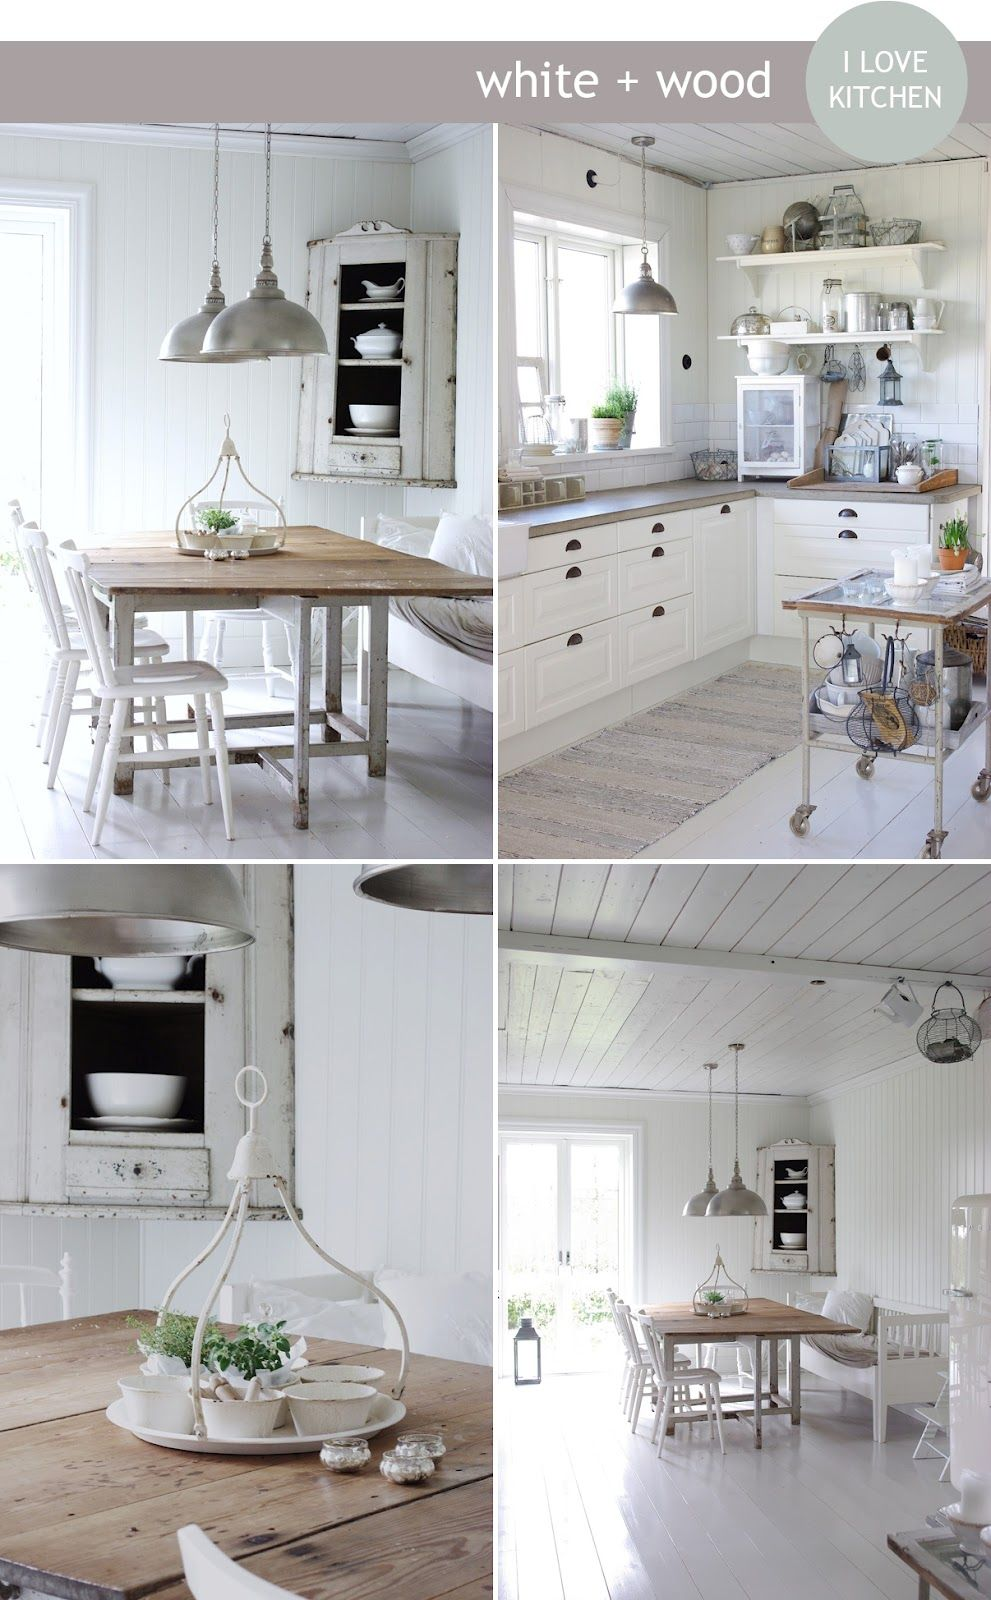 Shabby chic interiors stile nordico semplice e originale for Interni in stile cottage